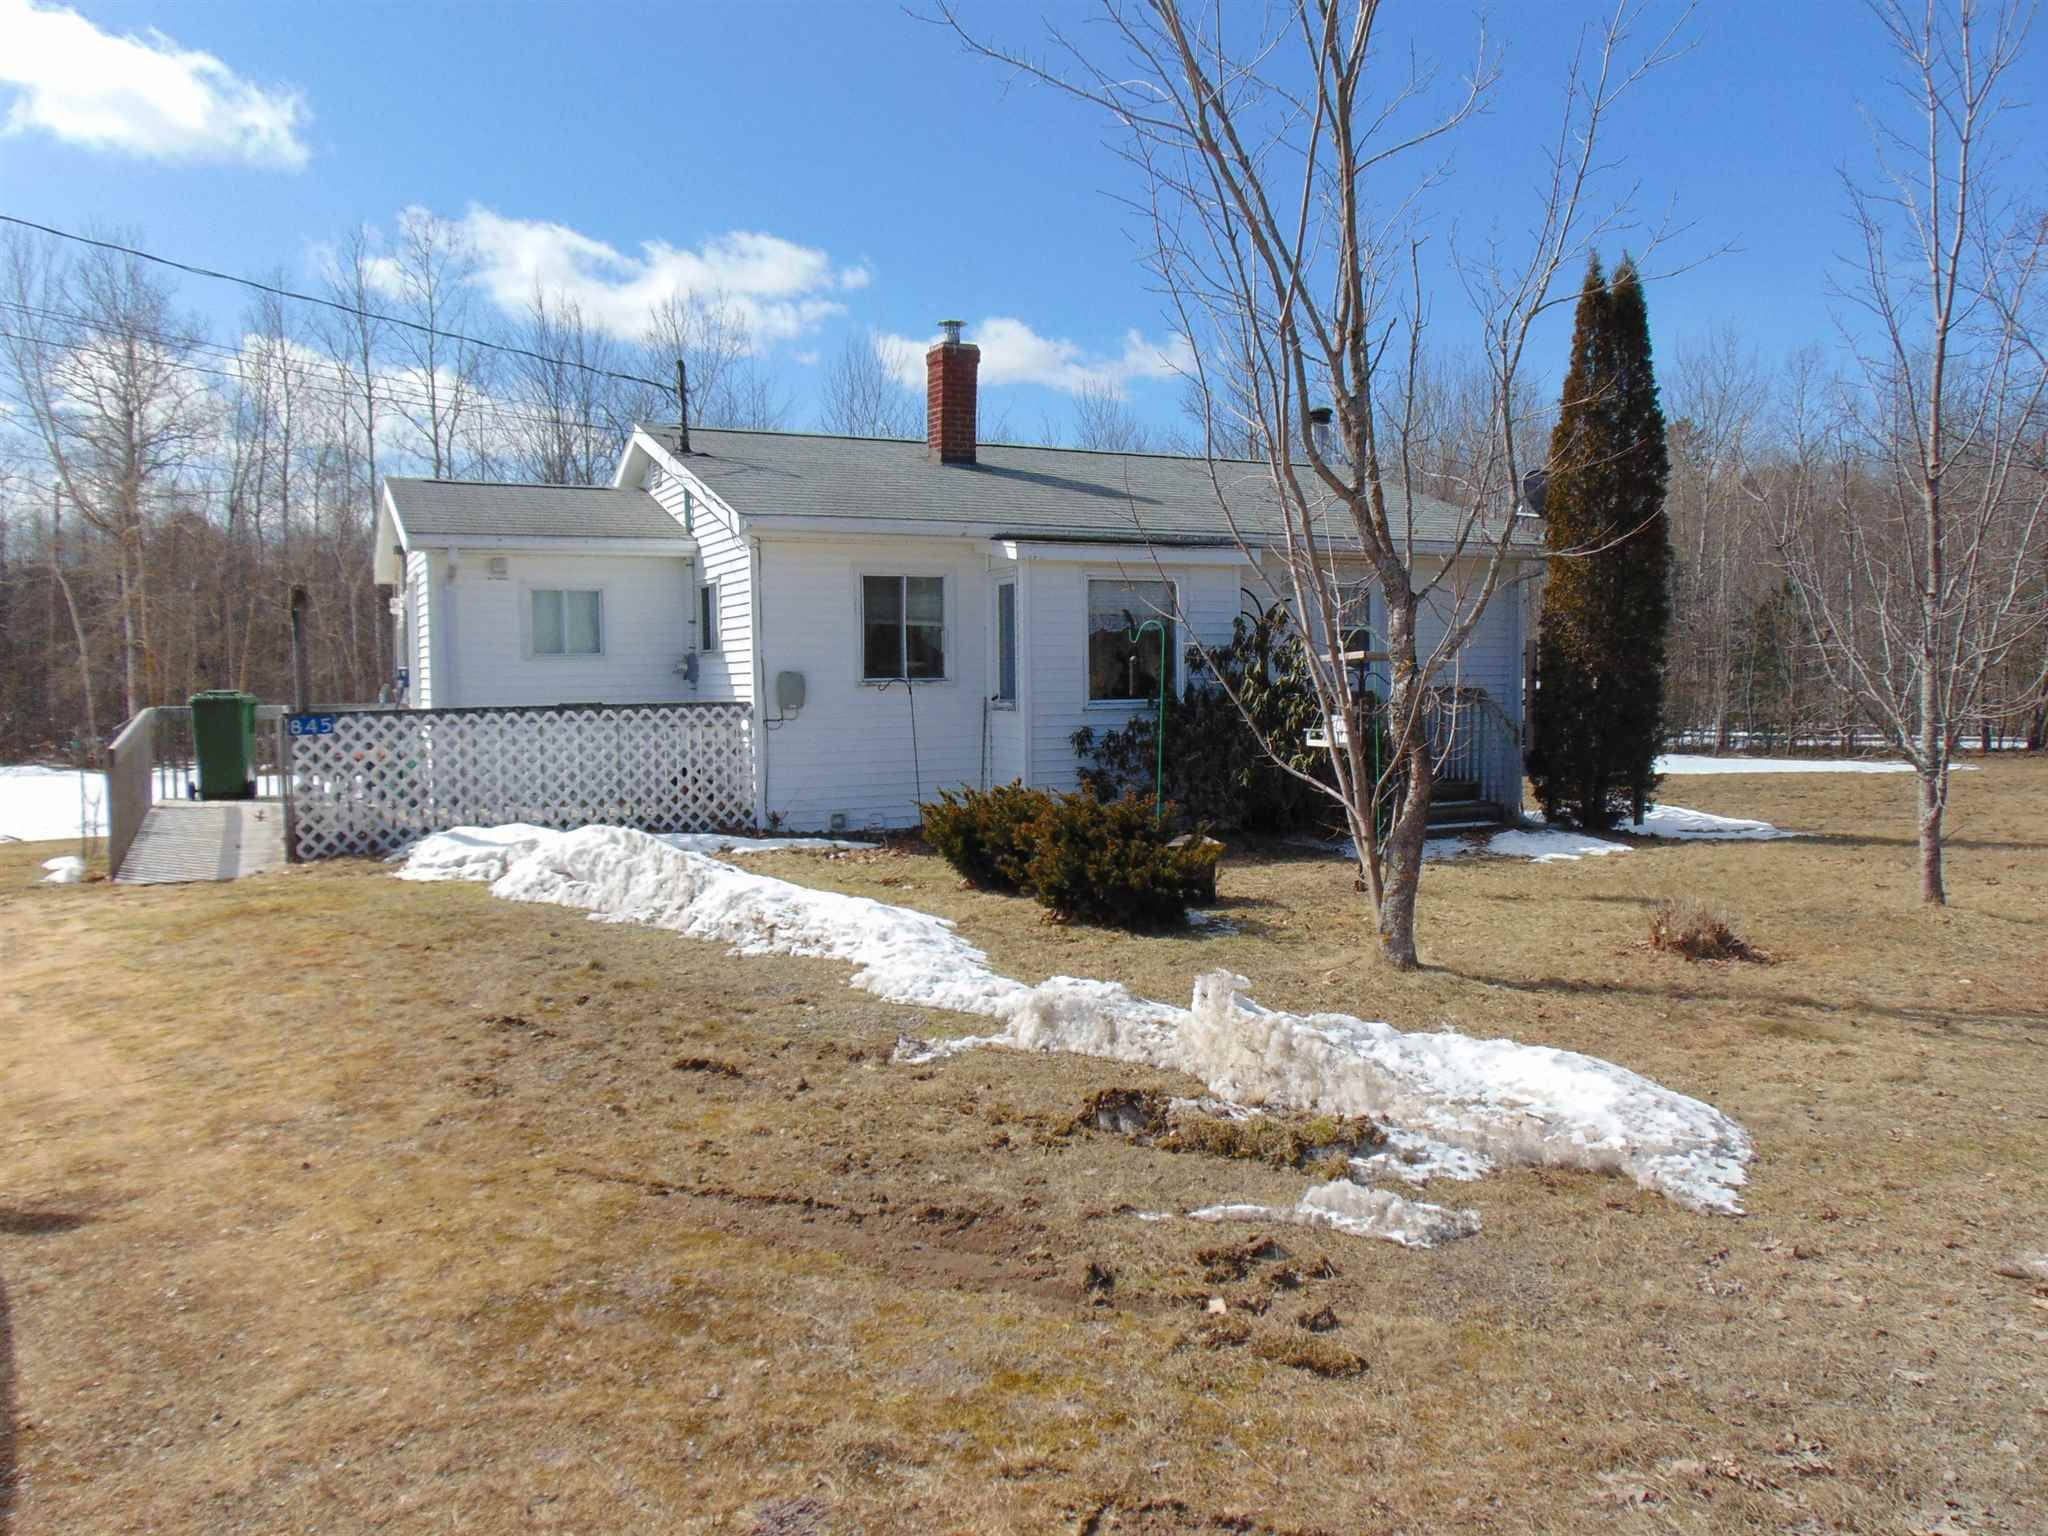 Main Photo: 845 Randolph Road in Cambridge: 404-Kings County Residential for sale (Annapolis Valley)  : MLS®# 202105044